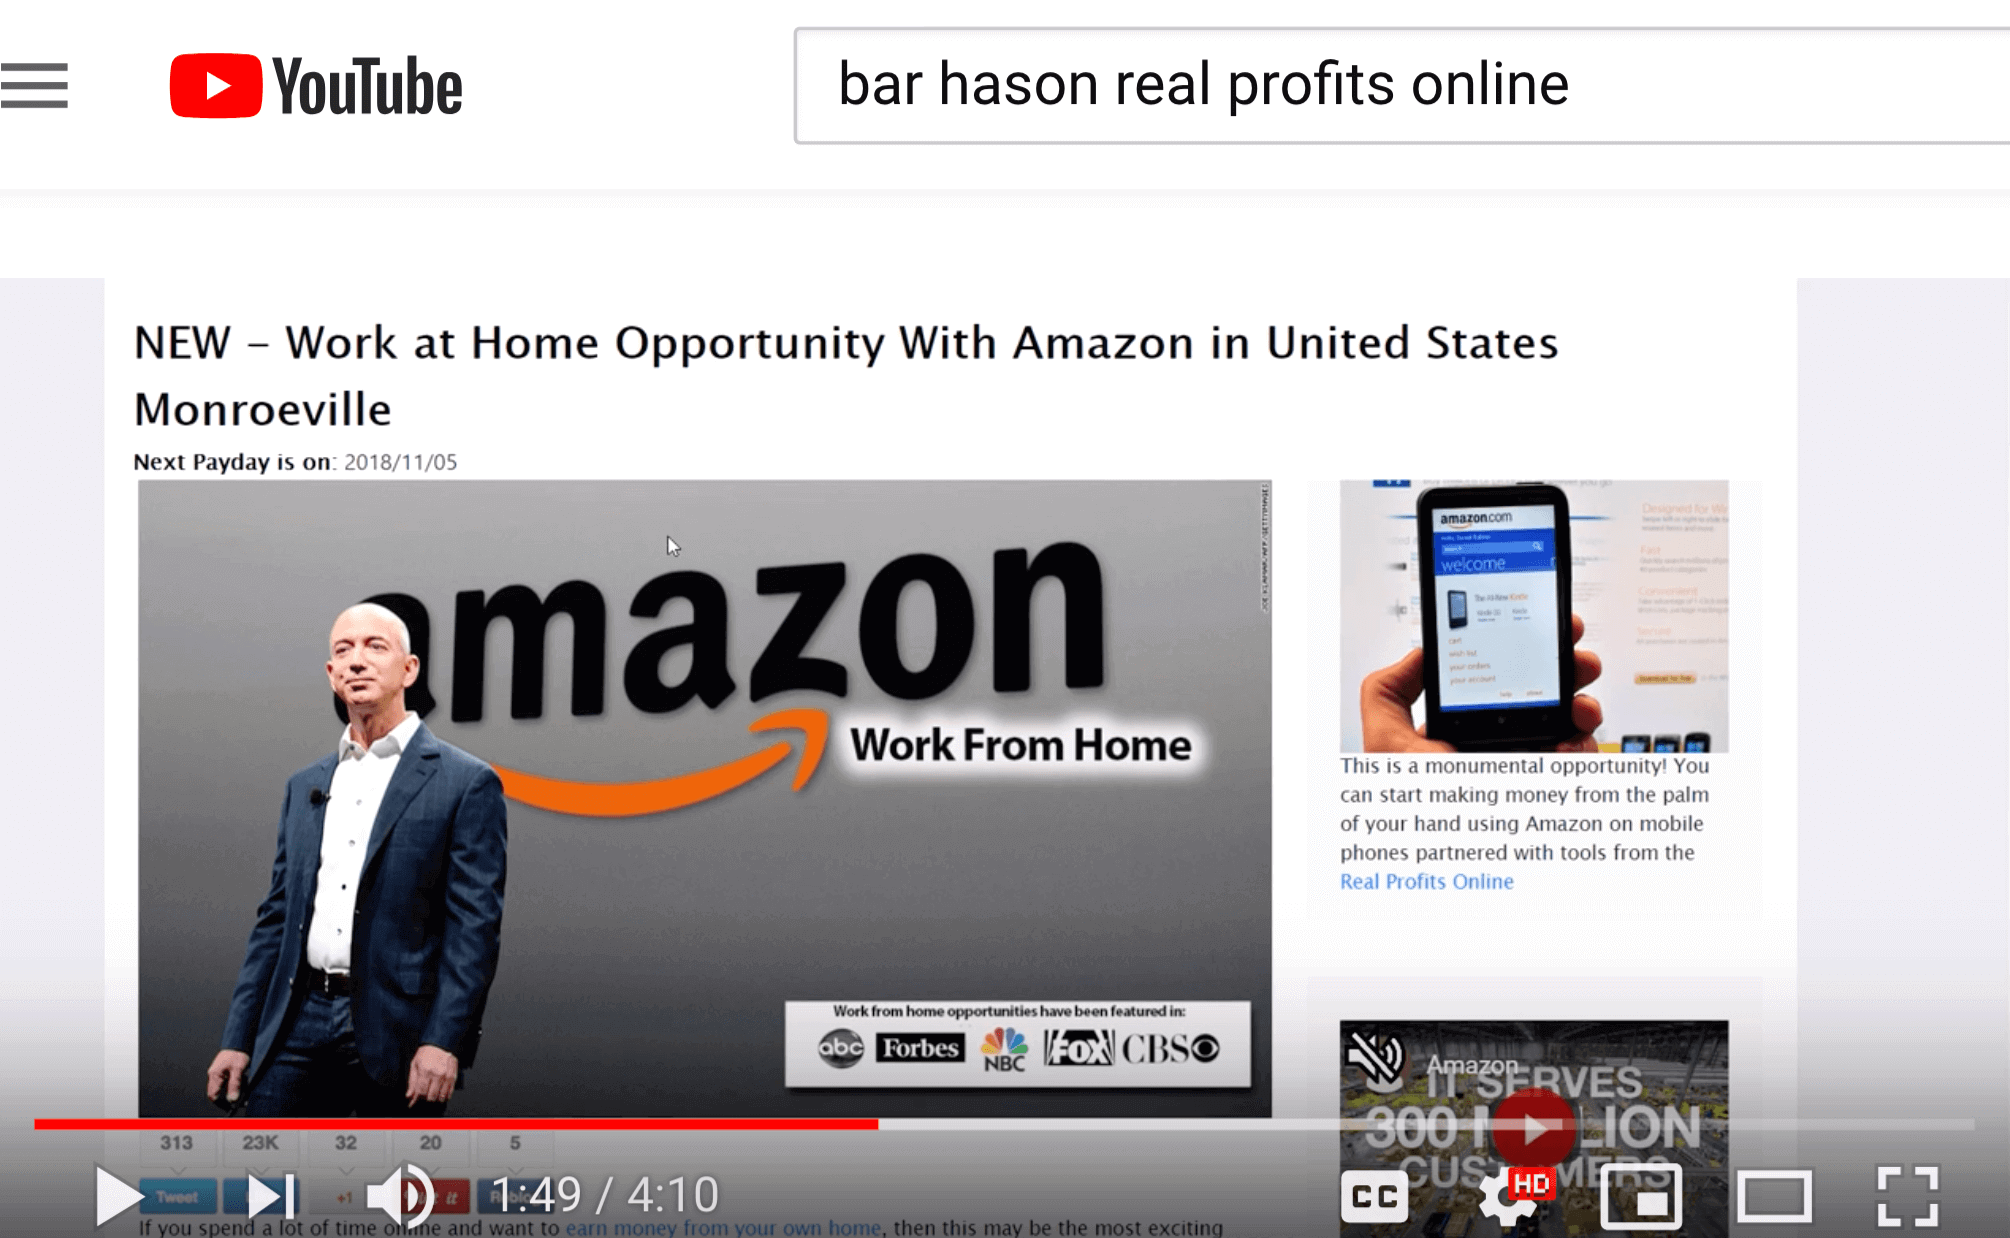 real profits online on youtube